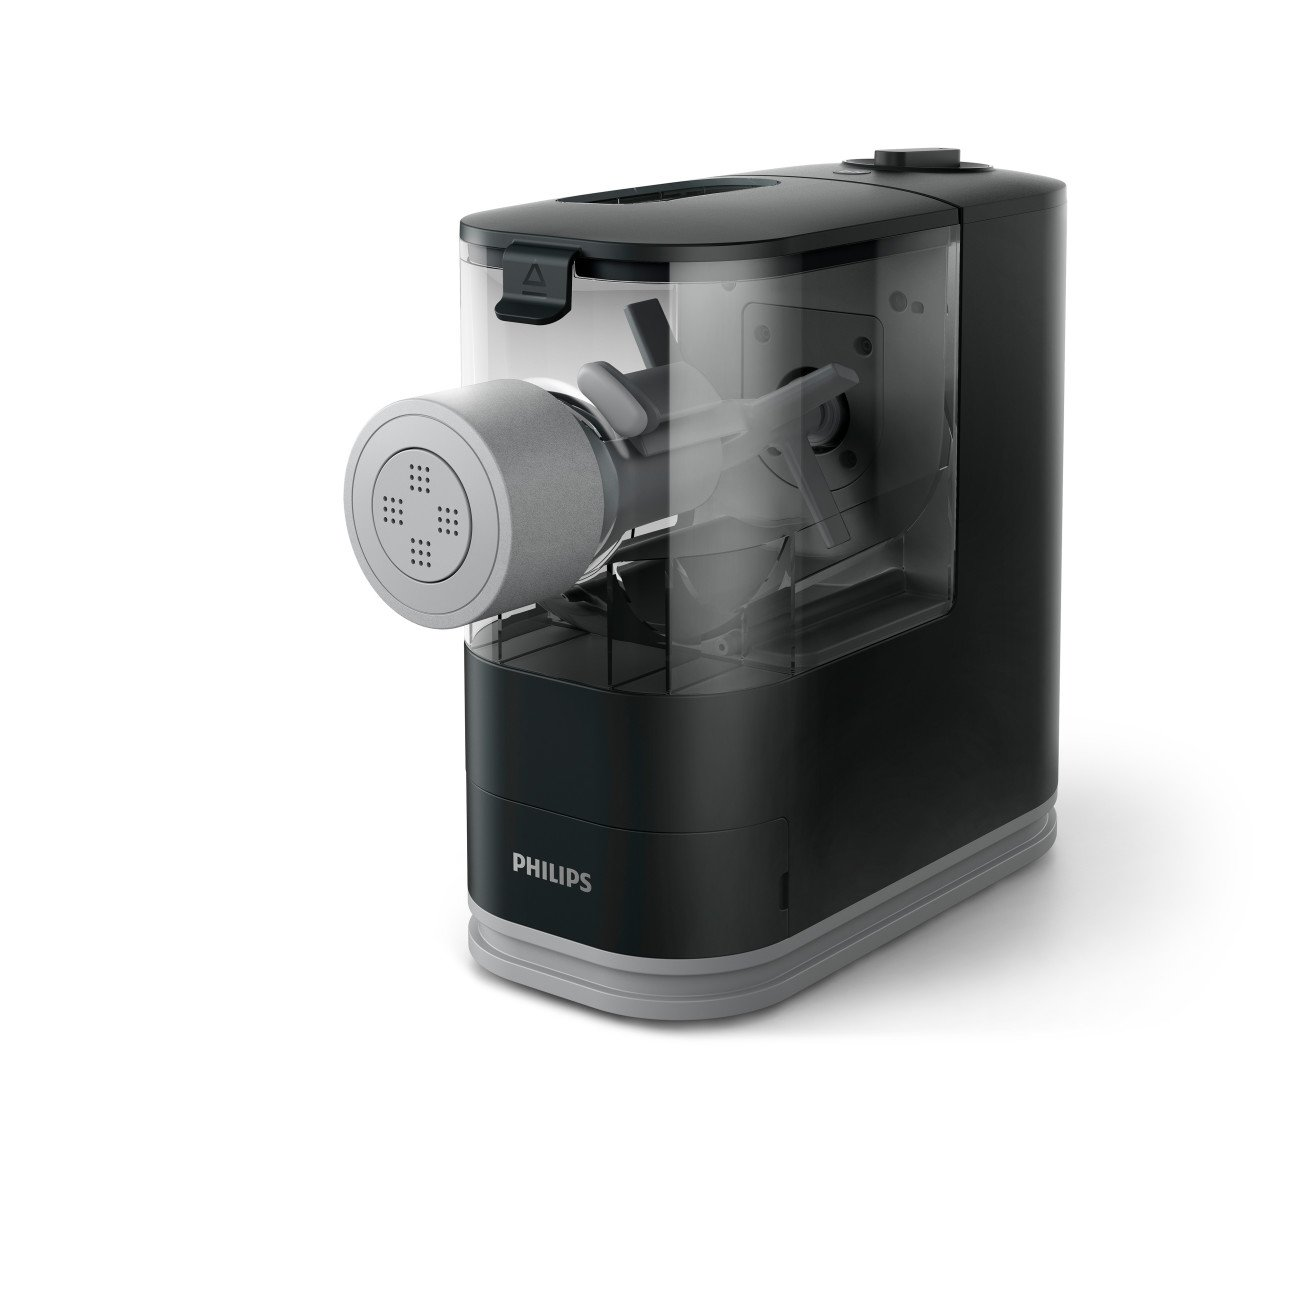 Philips Compact Pasta and Noodle Maker with 3 Interchangeable Pasta Shape Plates -  Black - HR2371/05 by Philips Kitchen Appliances